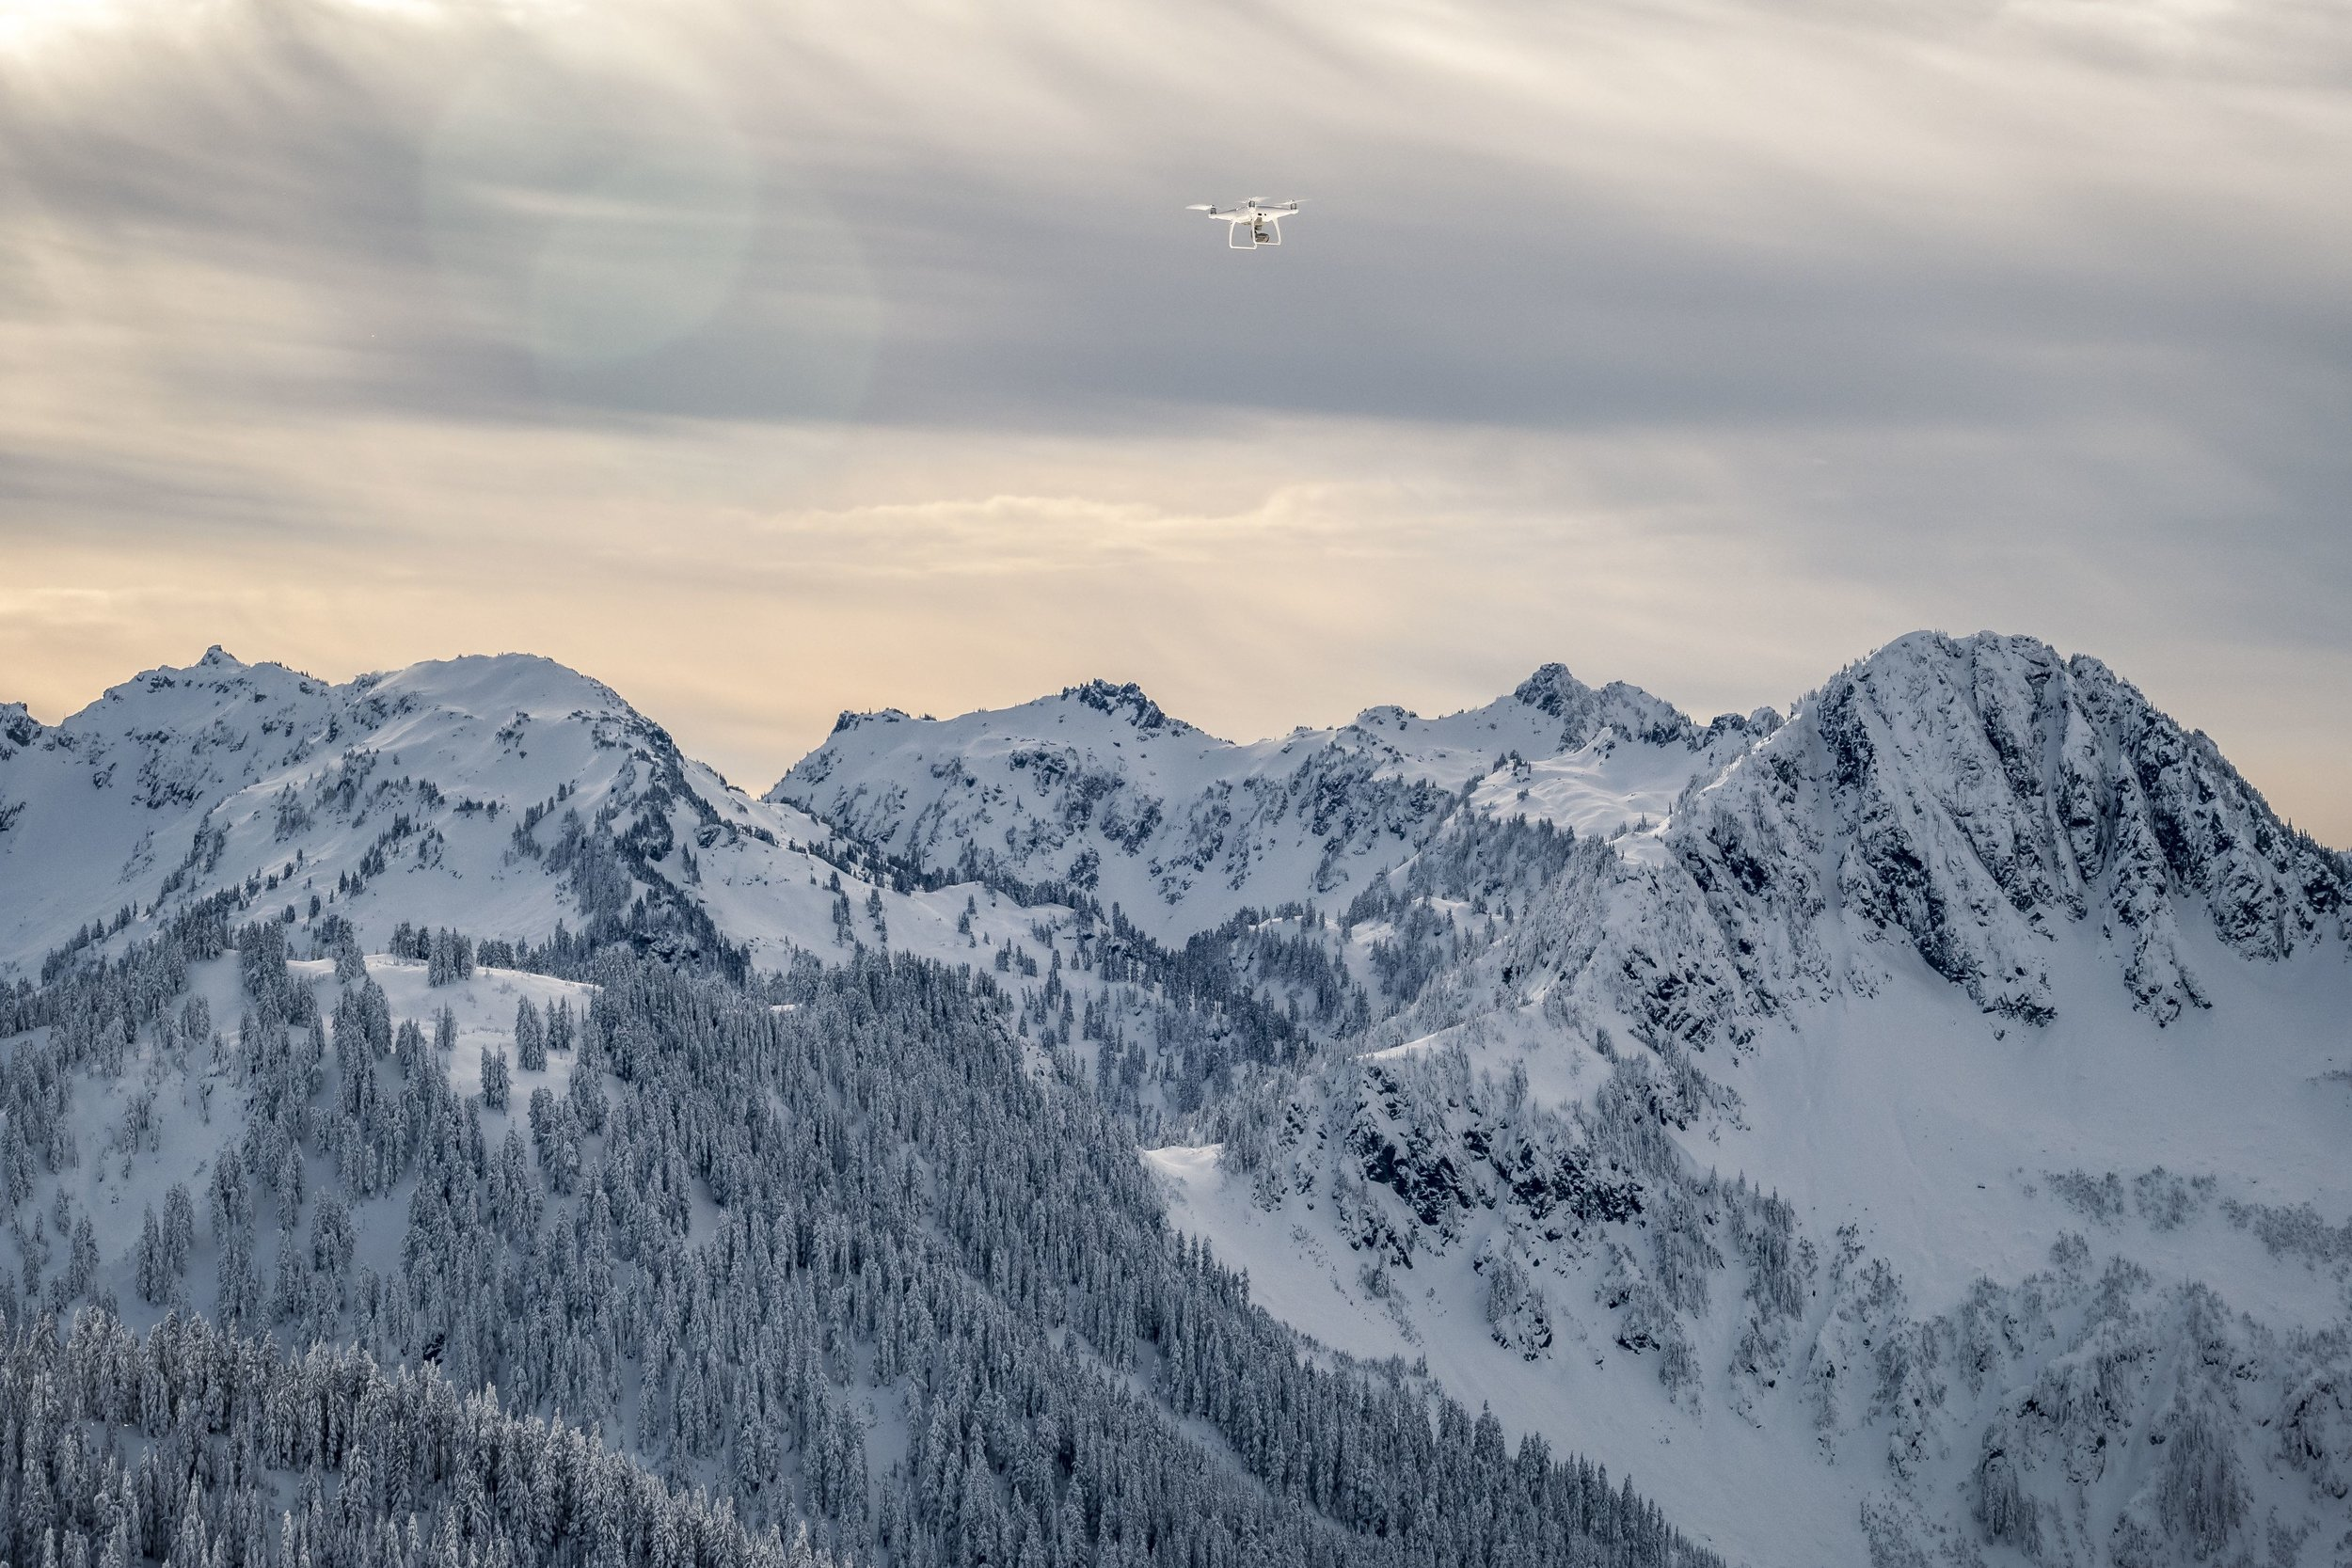 Drone_Flying_Over_Snowy_Mountain_Conditions_in_Winter_Season.jpg